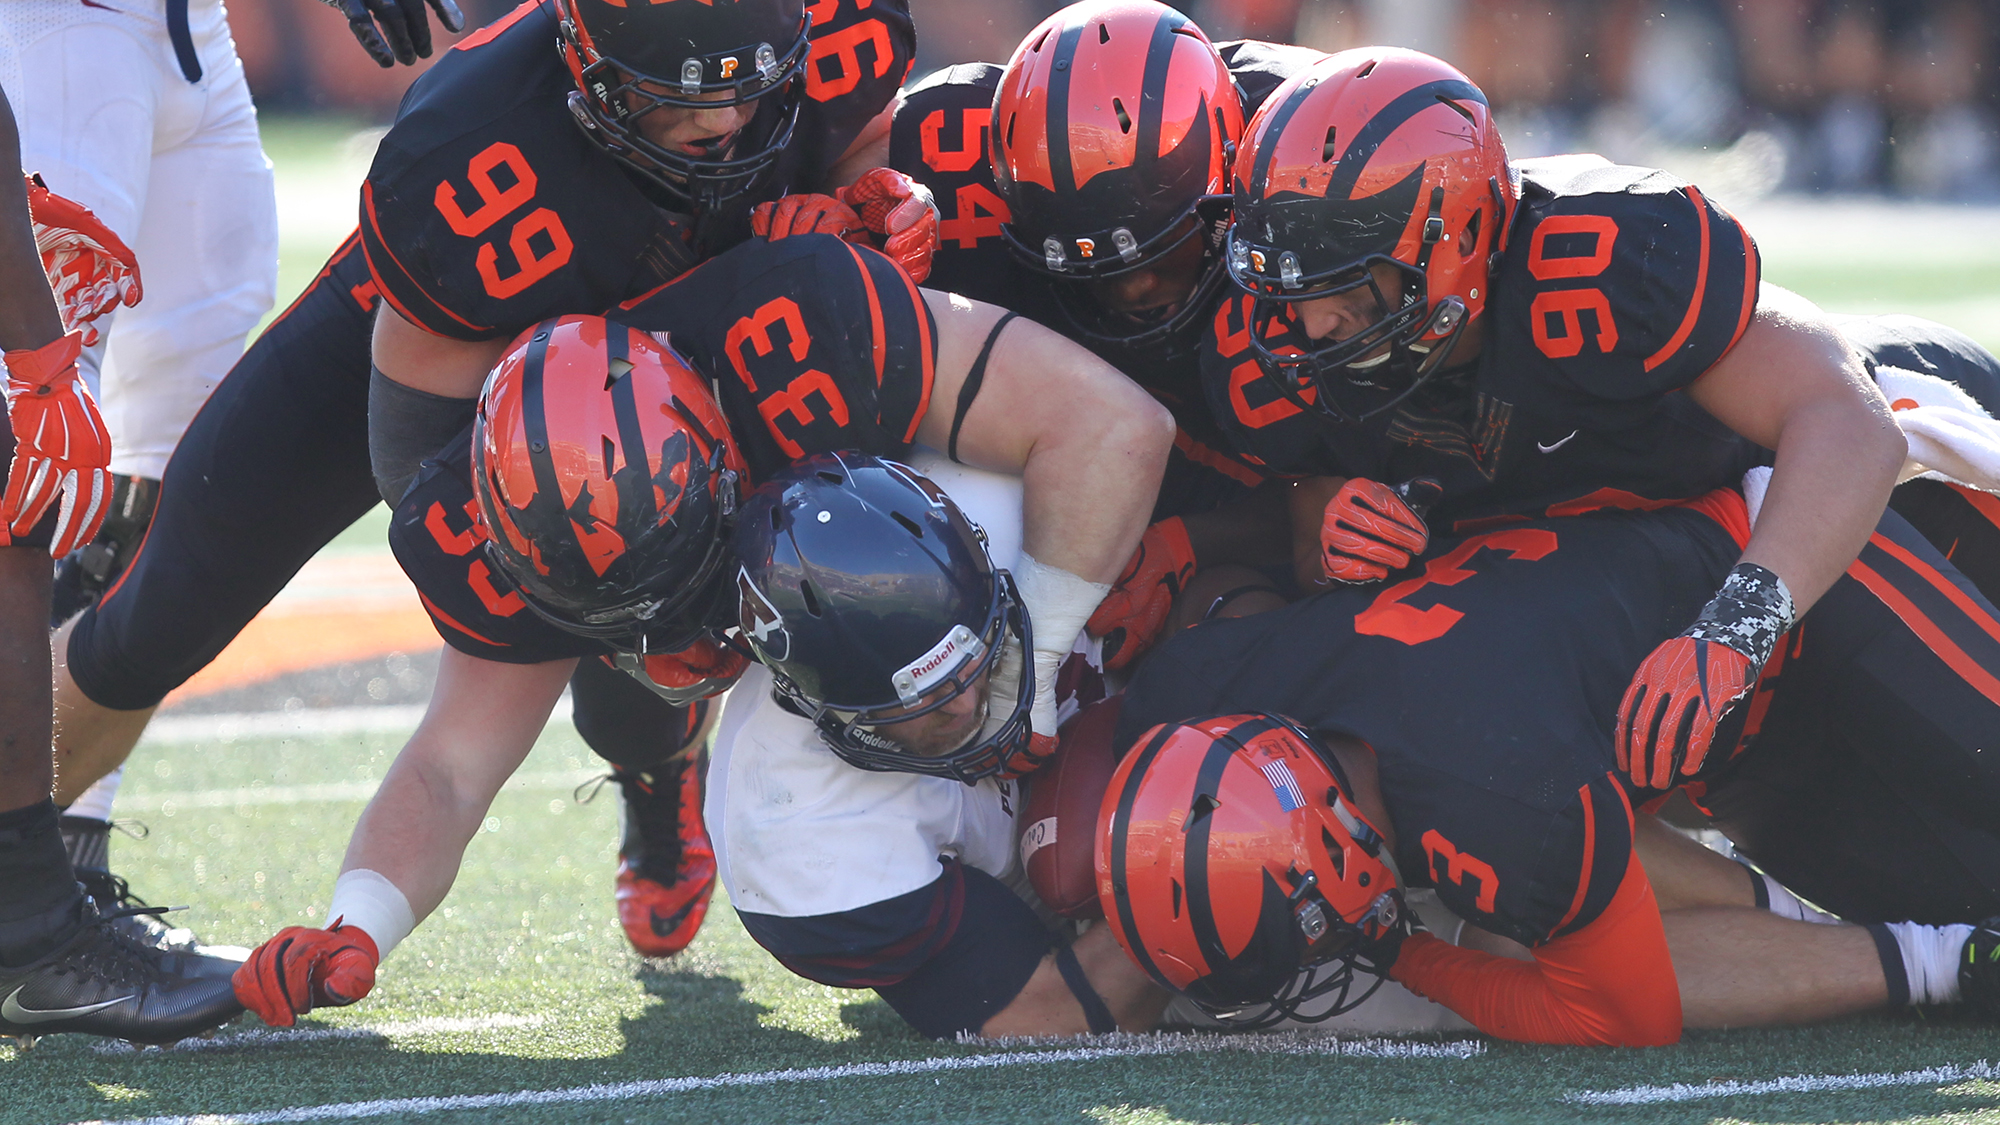 Punt Block TD, Swarming Defense Powers Princeton To 28-0 Shutout Of Penn To Stay Alive In Ivy Race